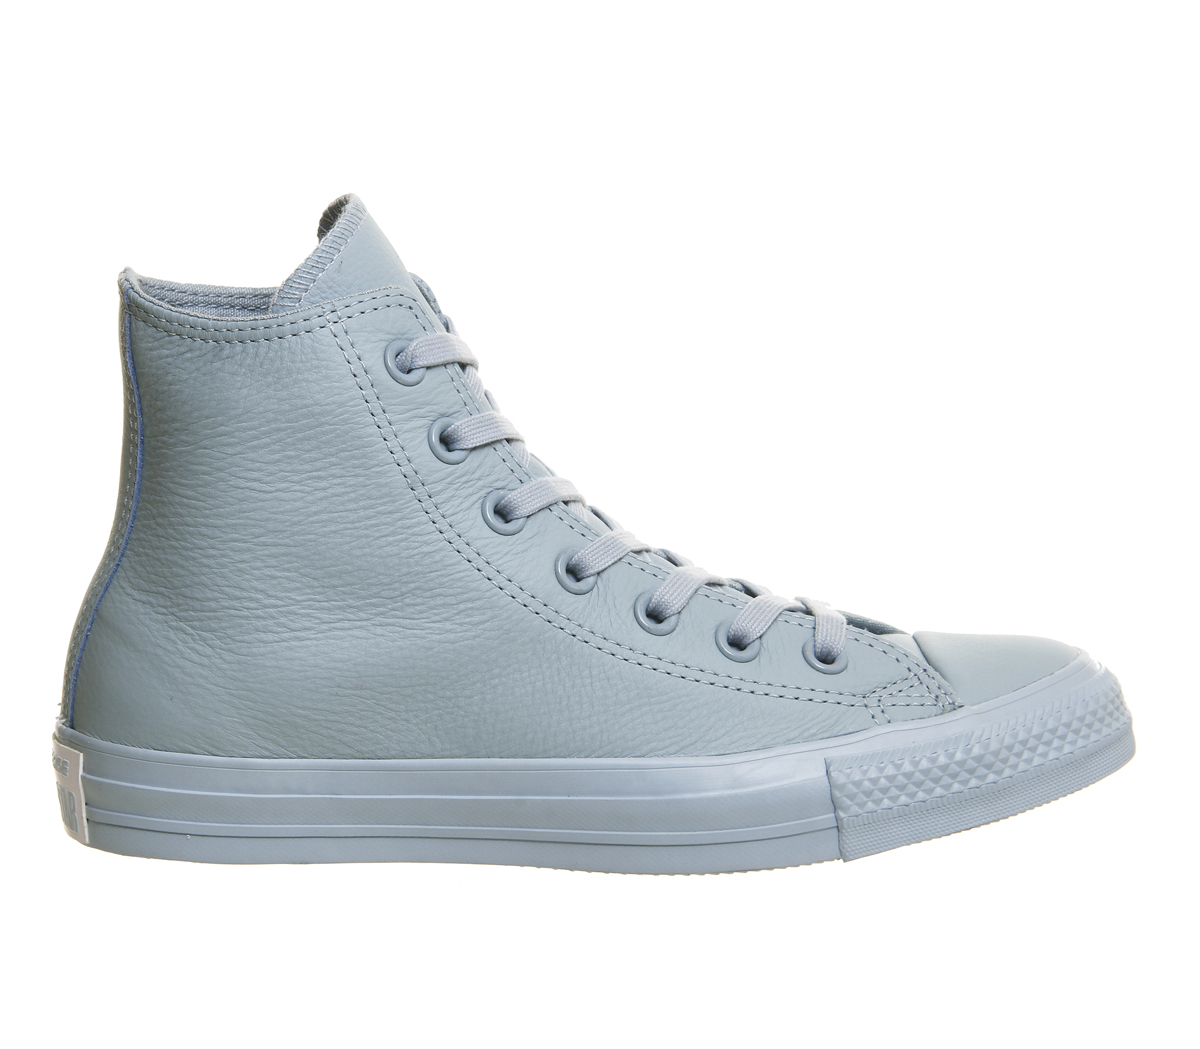 Converse all star hi leather in gray lyst - Graue converse ...